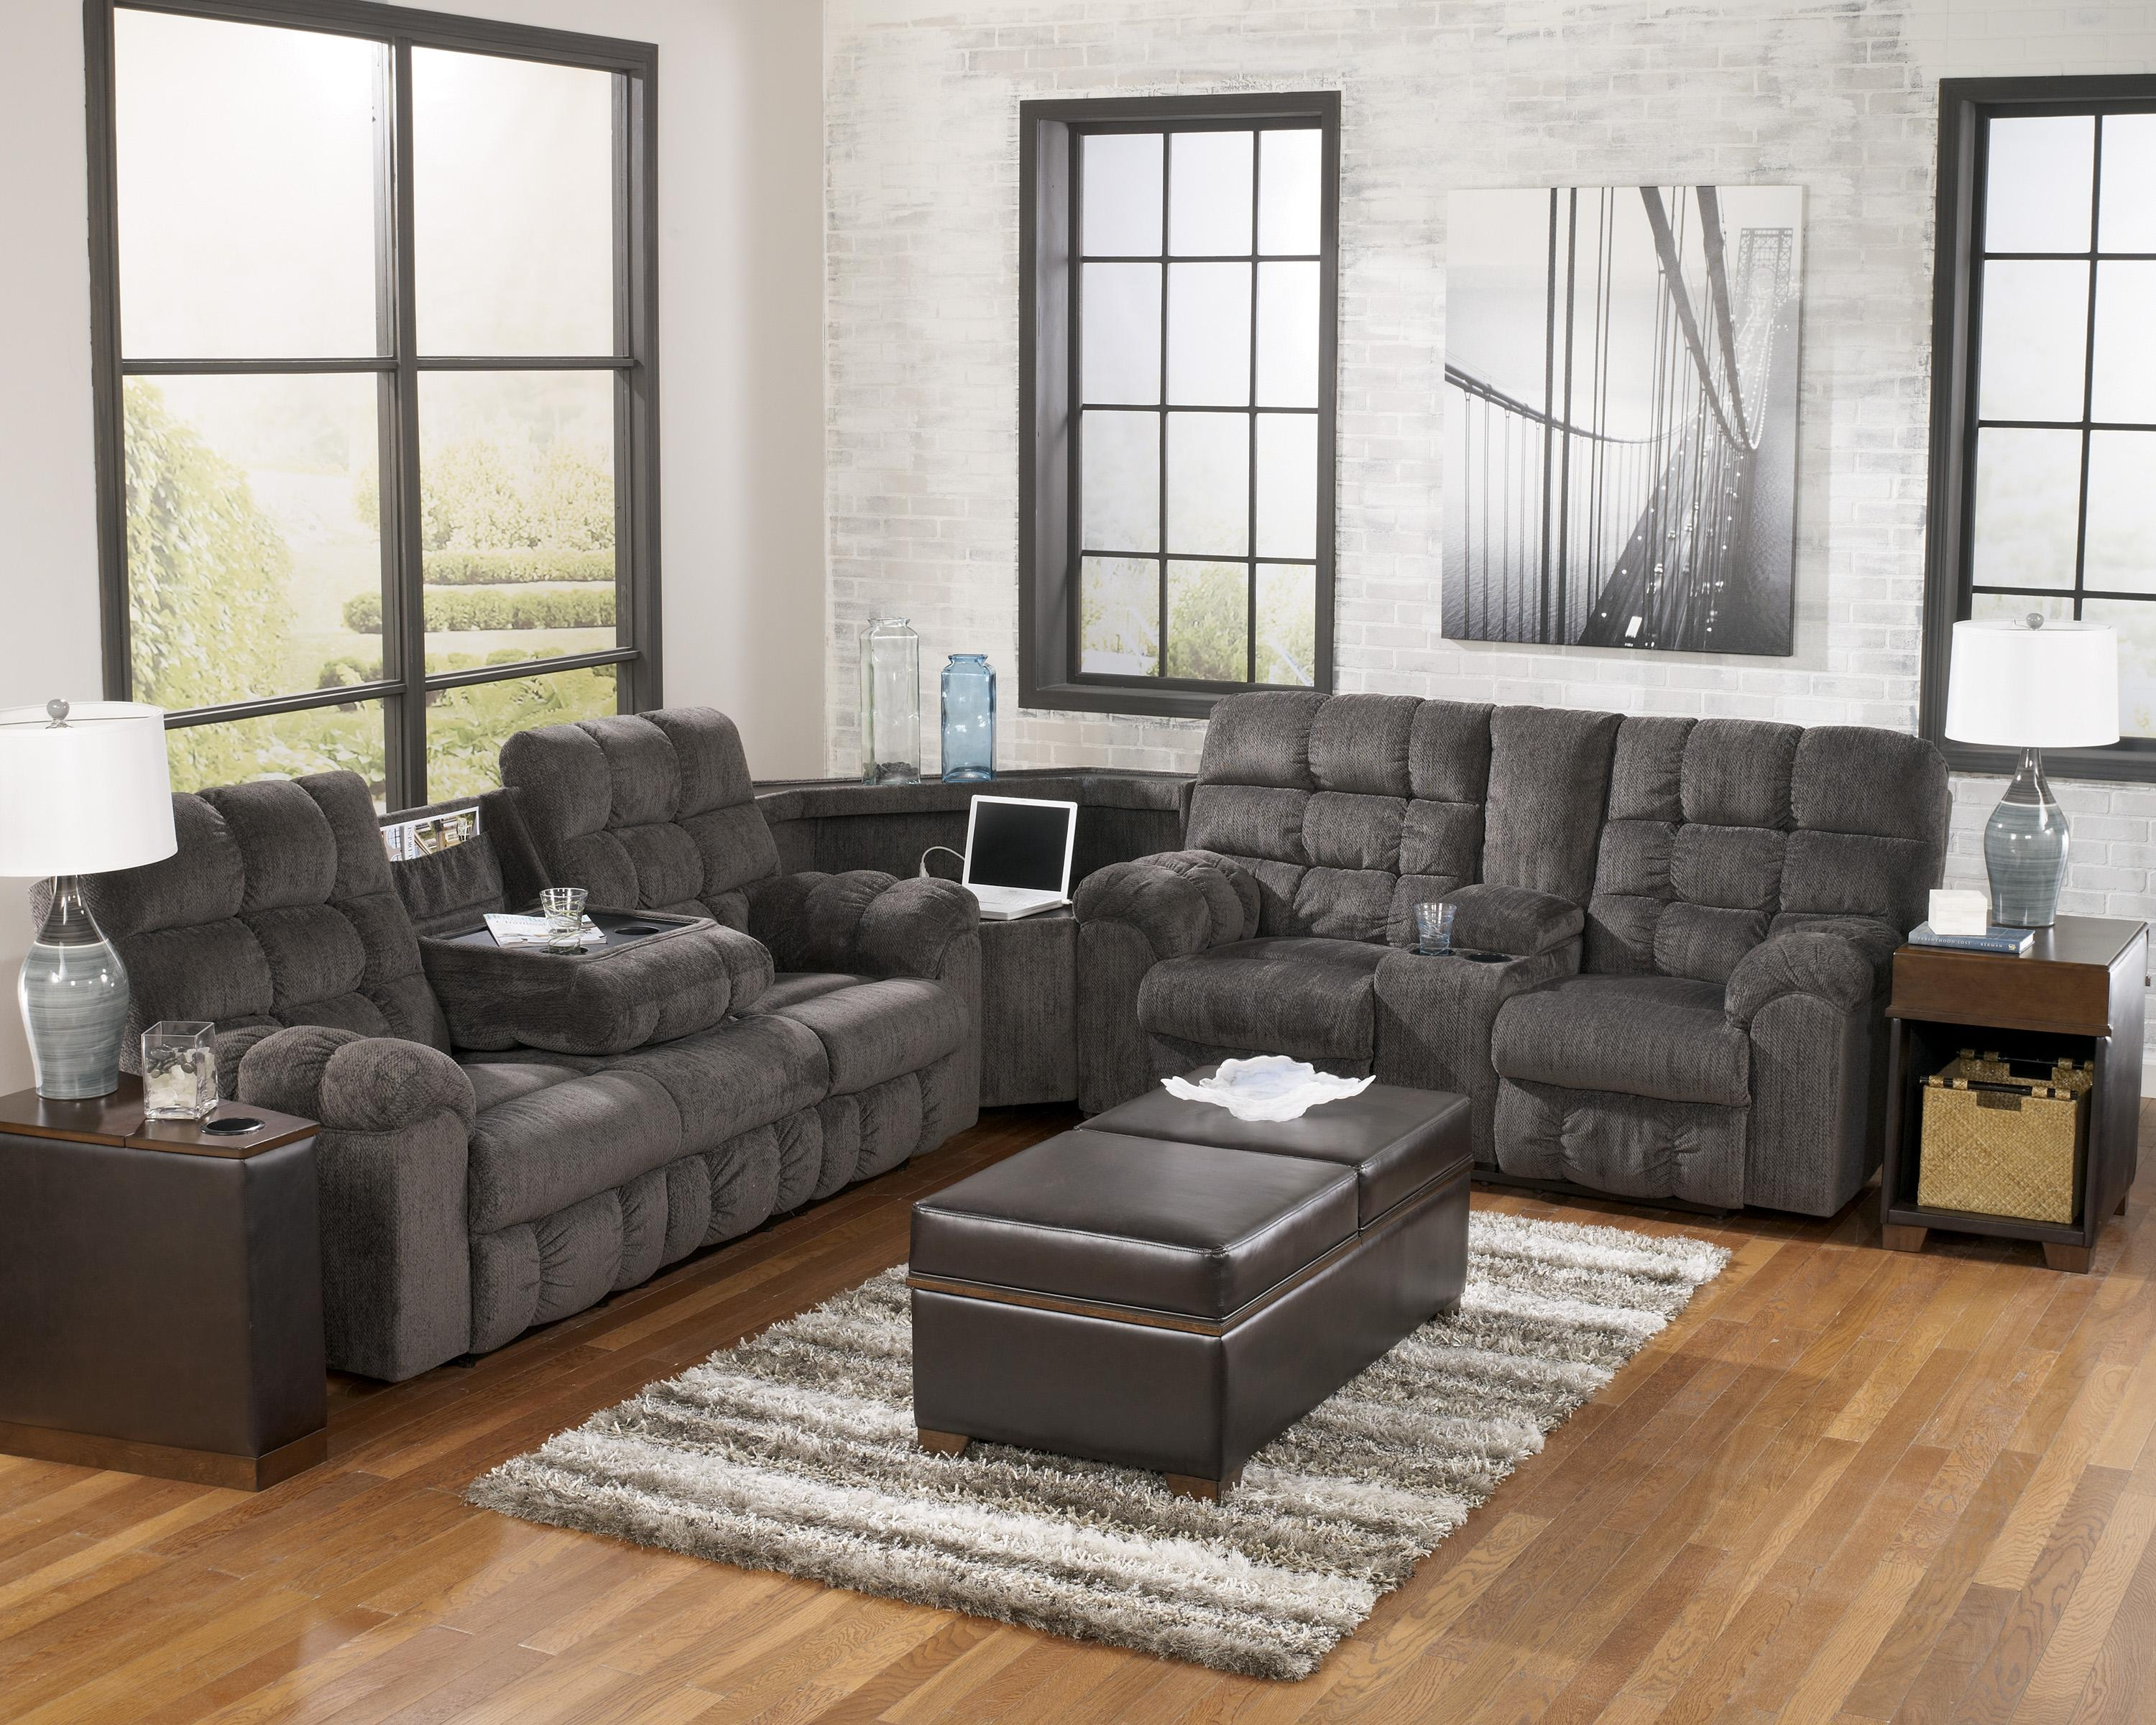 Sofas Center : Ashley Furniture Sectionals Sectional Couch Gray For Ashley Furniture Brown Corduroy Sectional Sofas (Image 15 of 20)